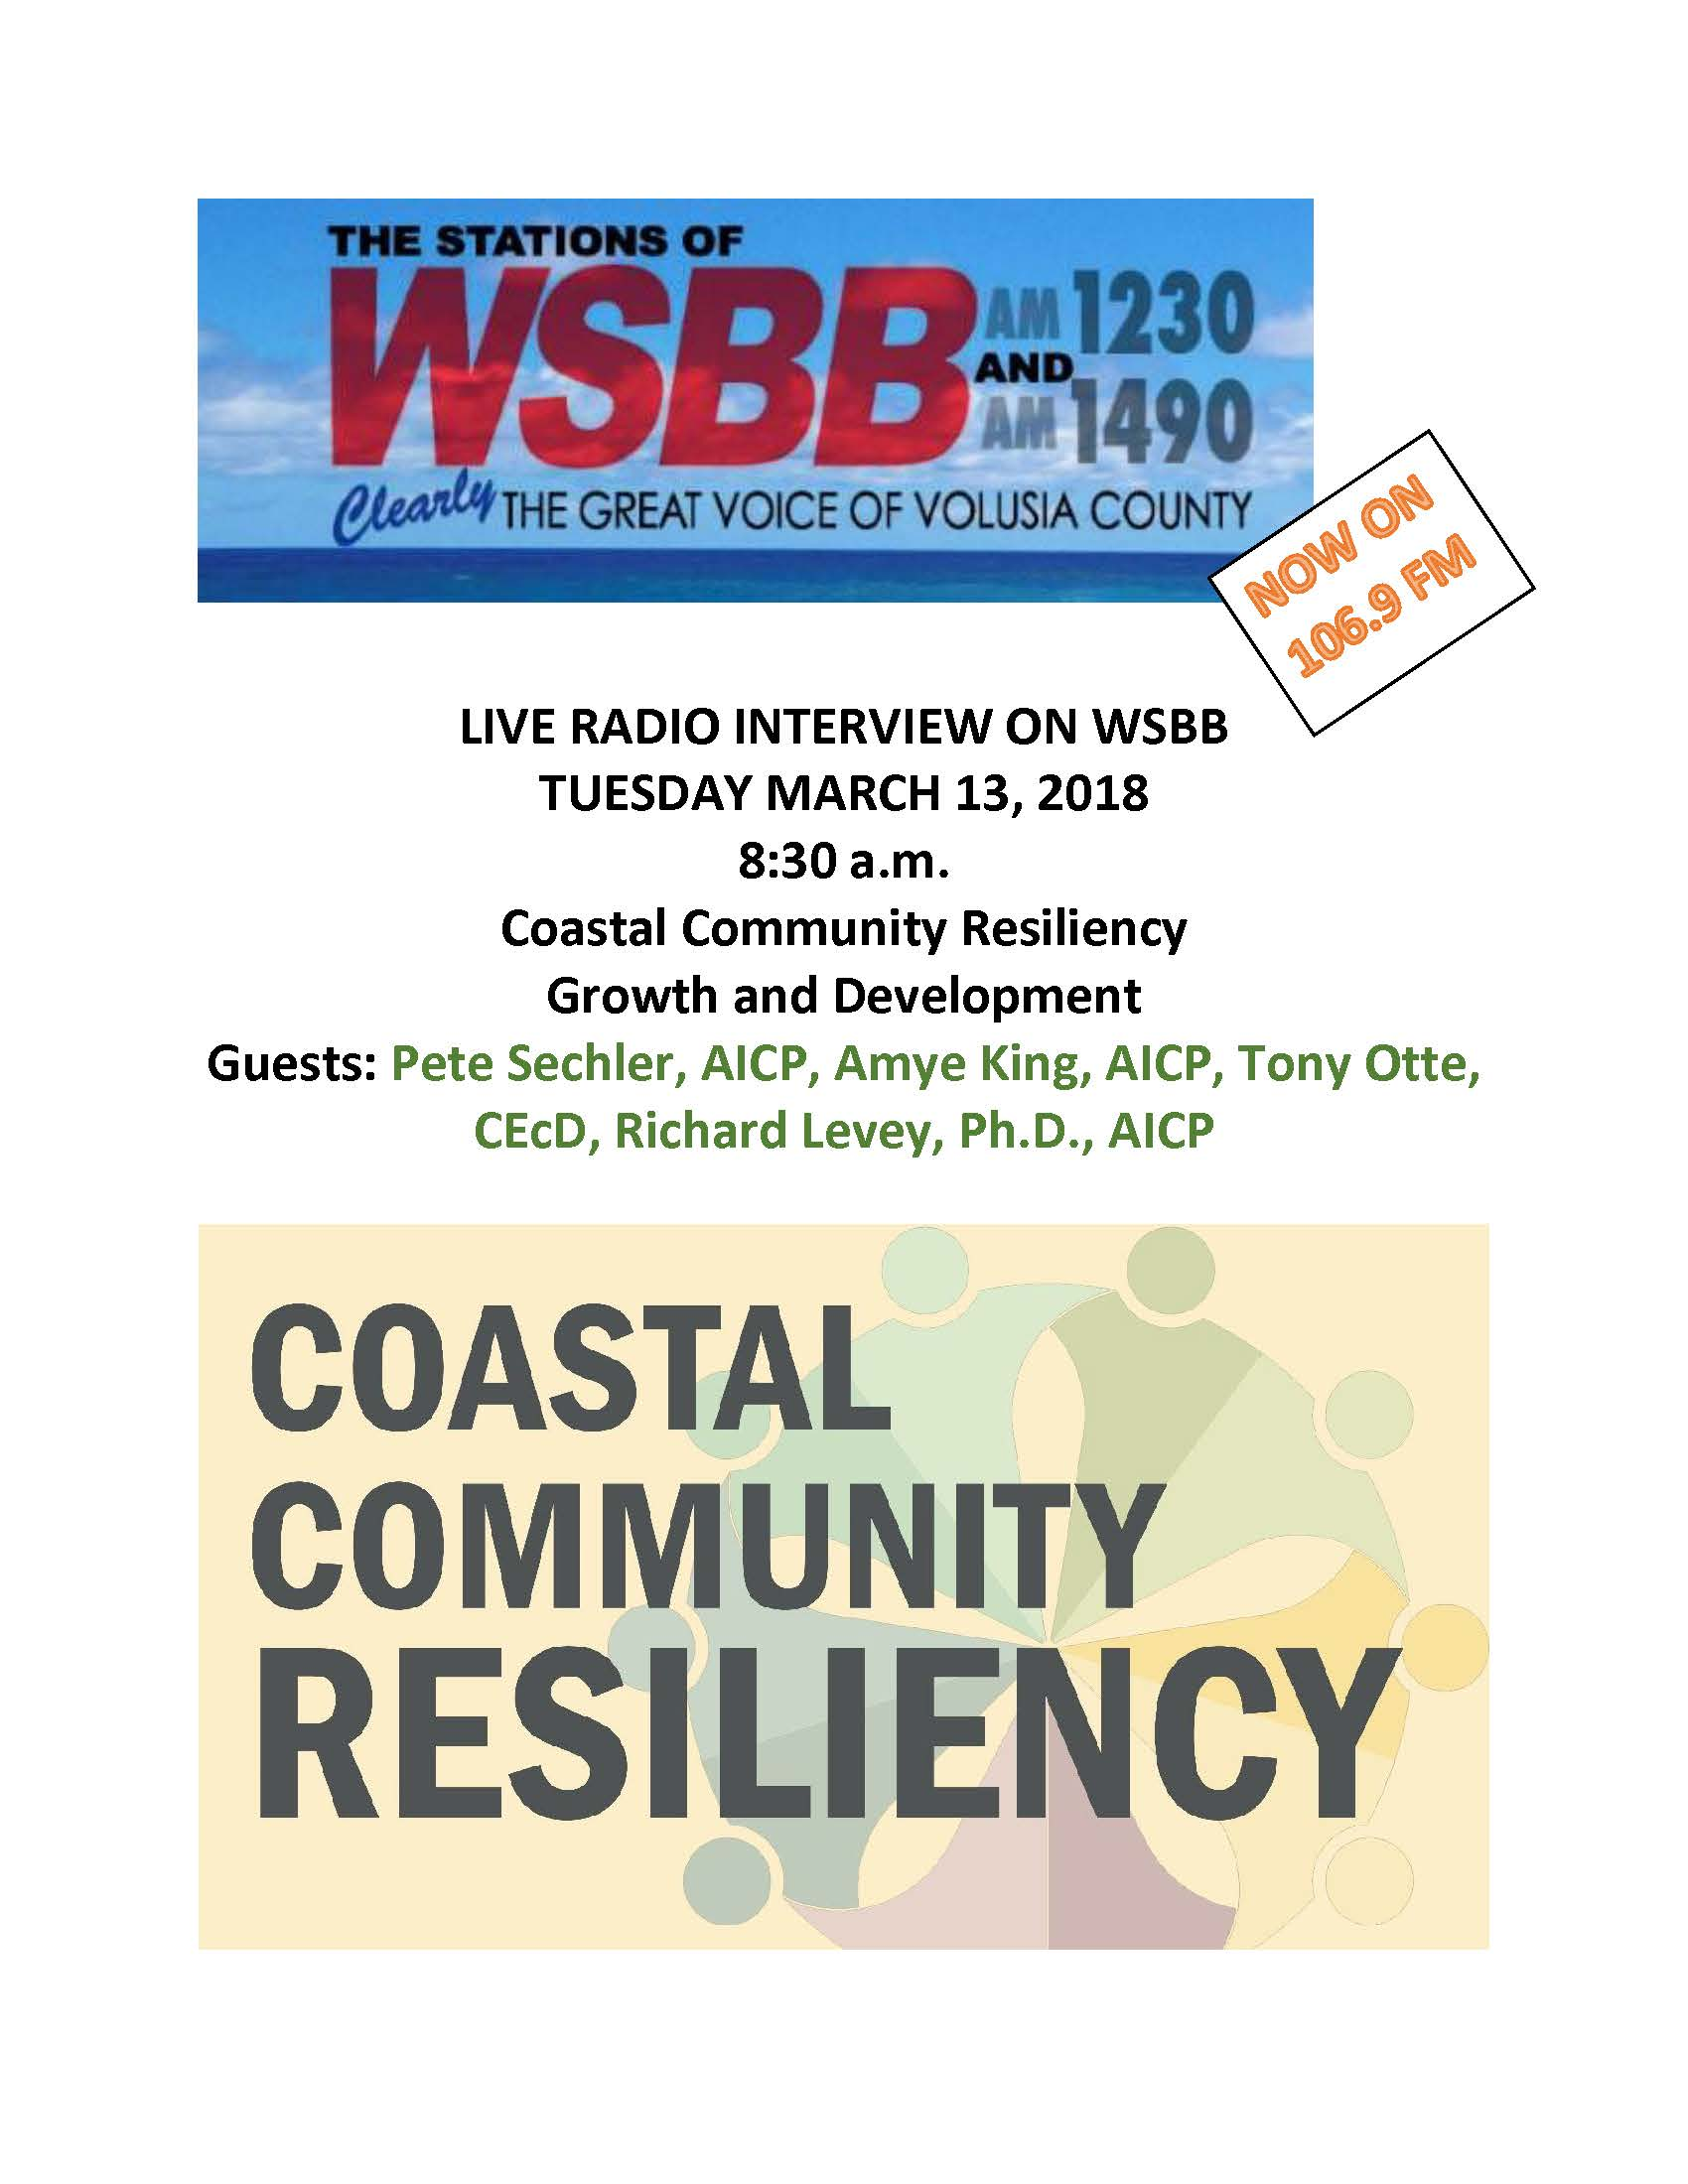 LIVE RADIO INTERVIEW ON WSBB 3.13.18